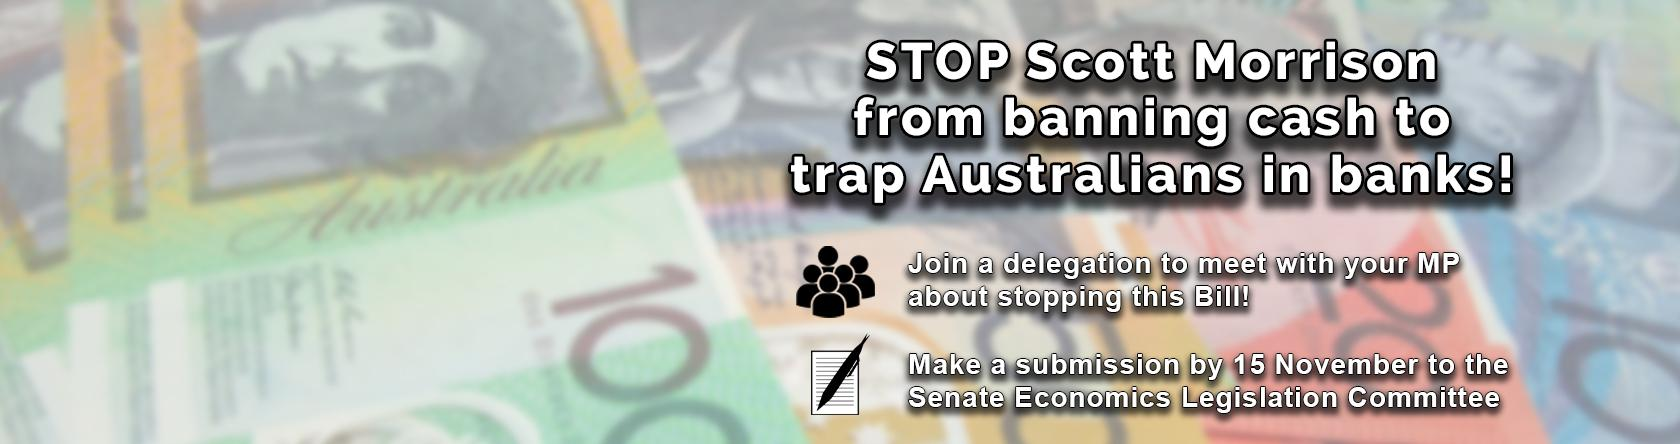 Stop the 'Cash Ban' Bill